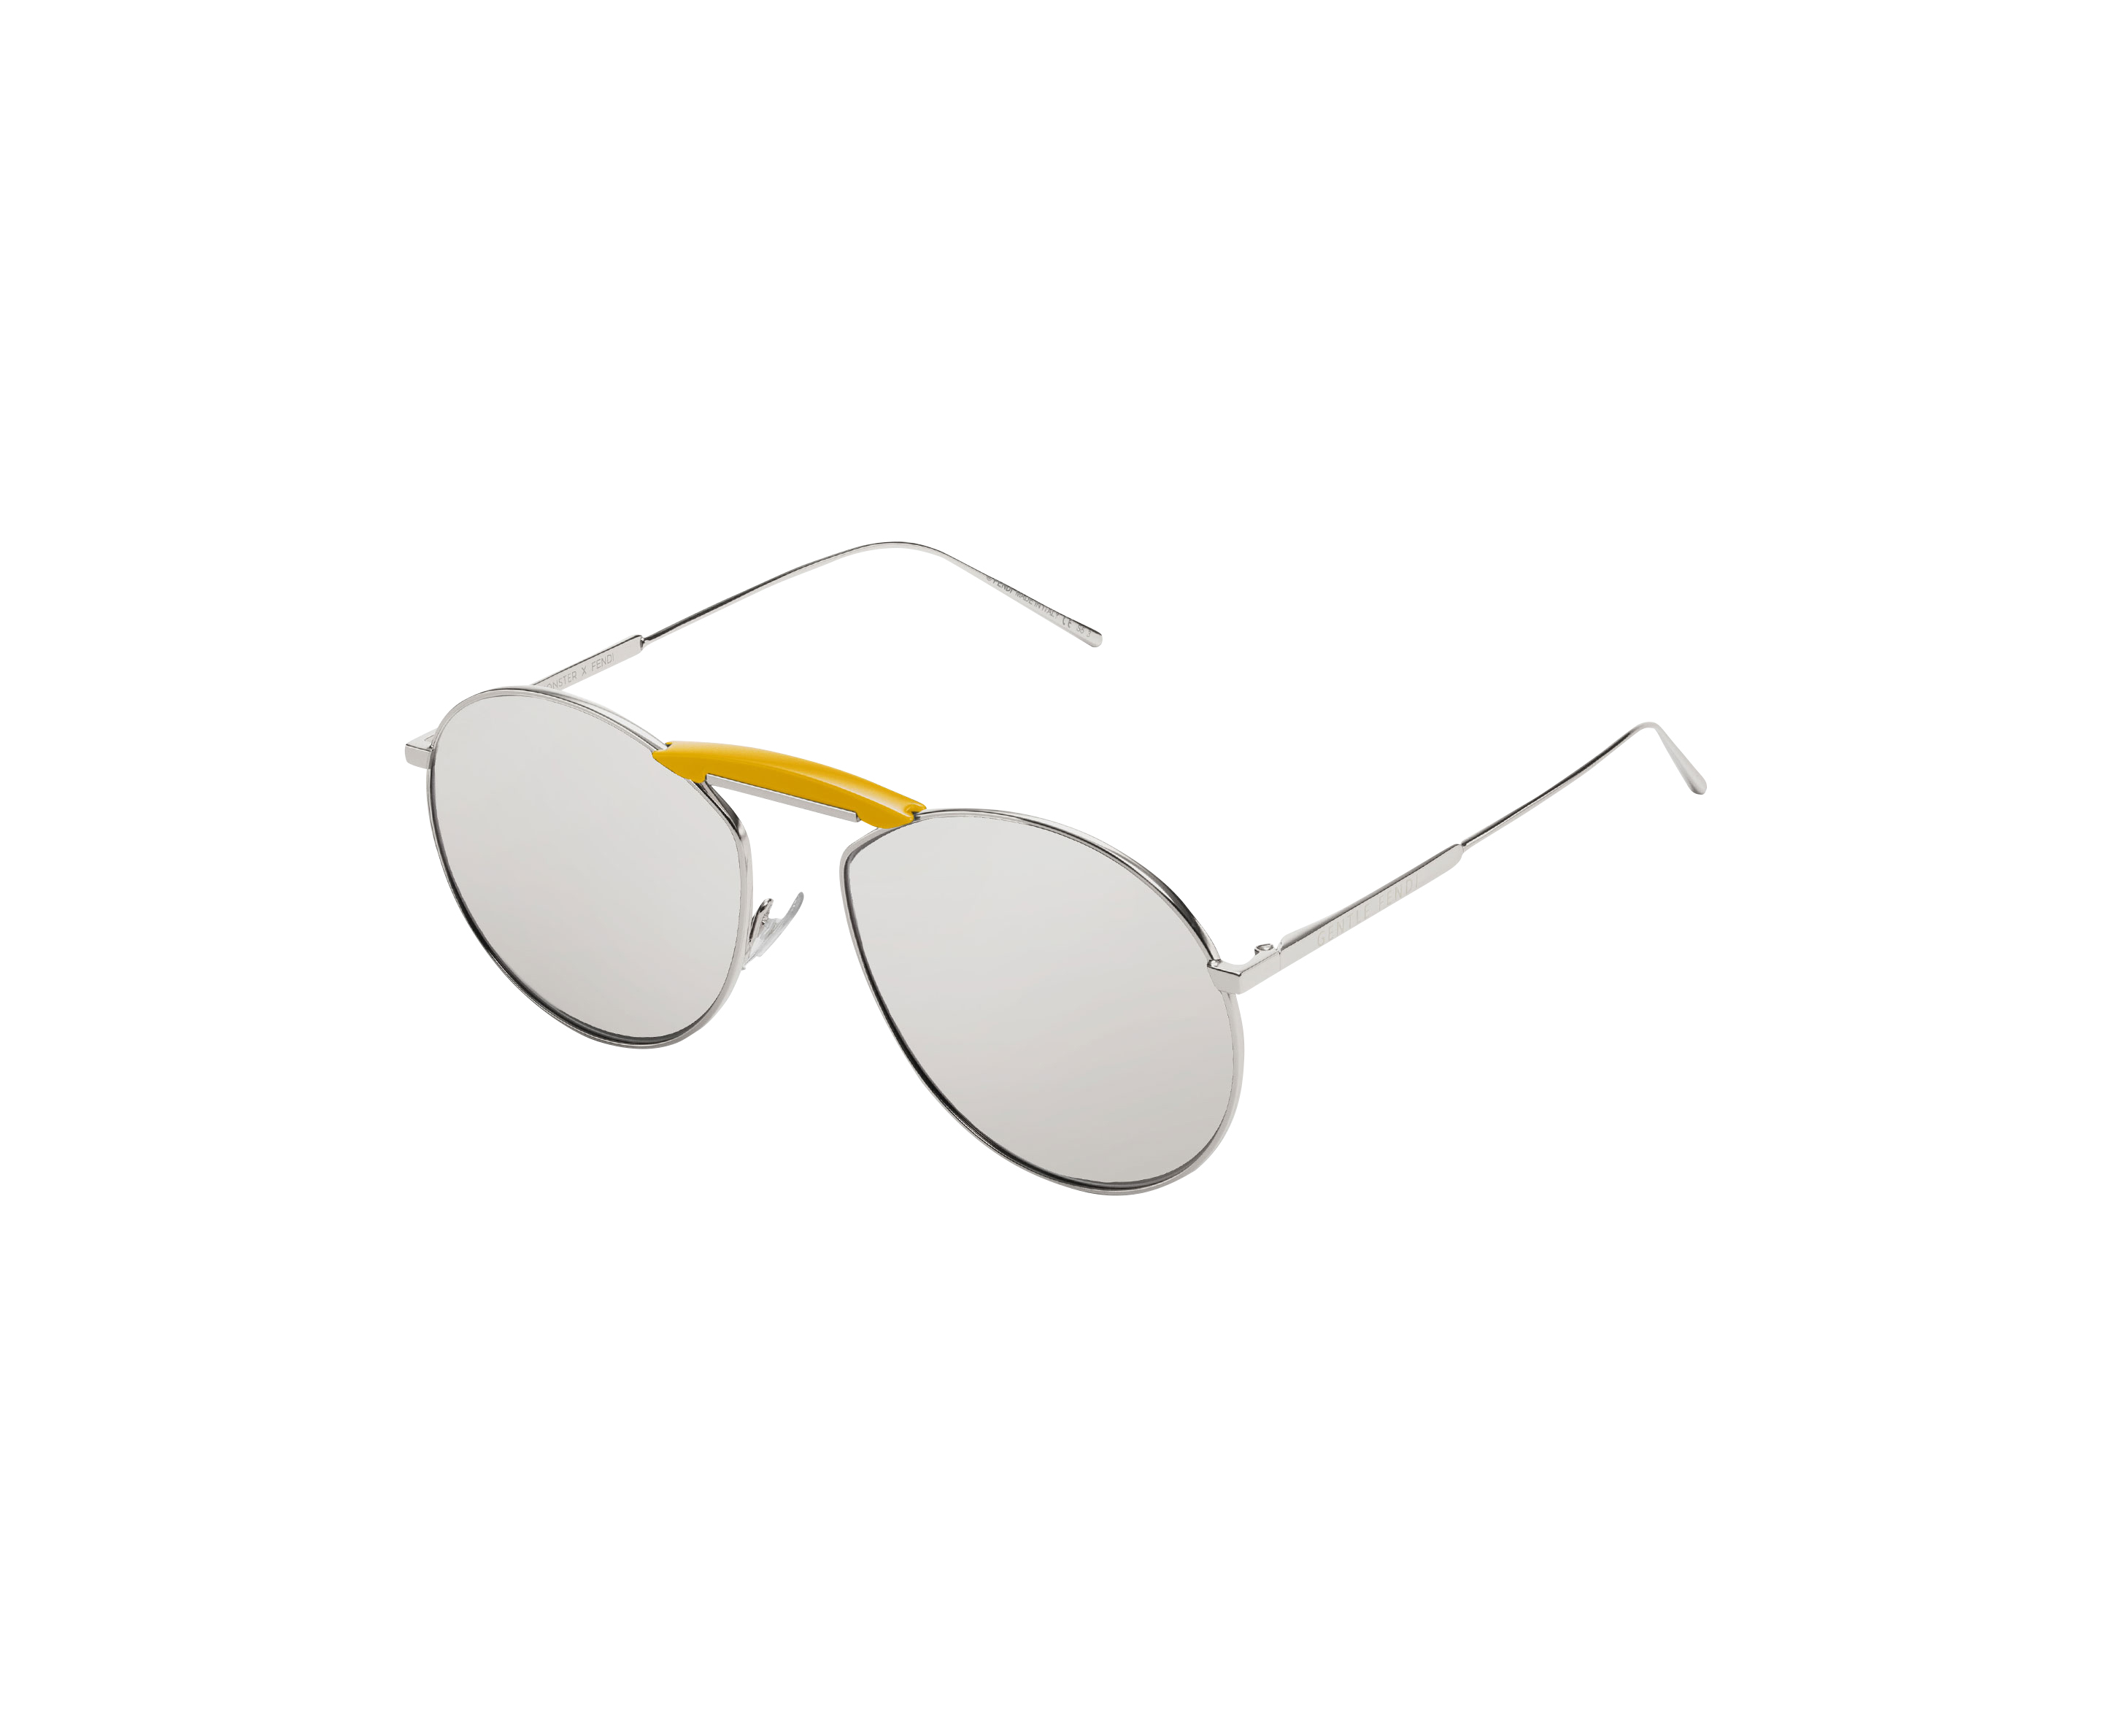 Gentle Fendi sunglasses by Gentle Monster and Fendi